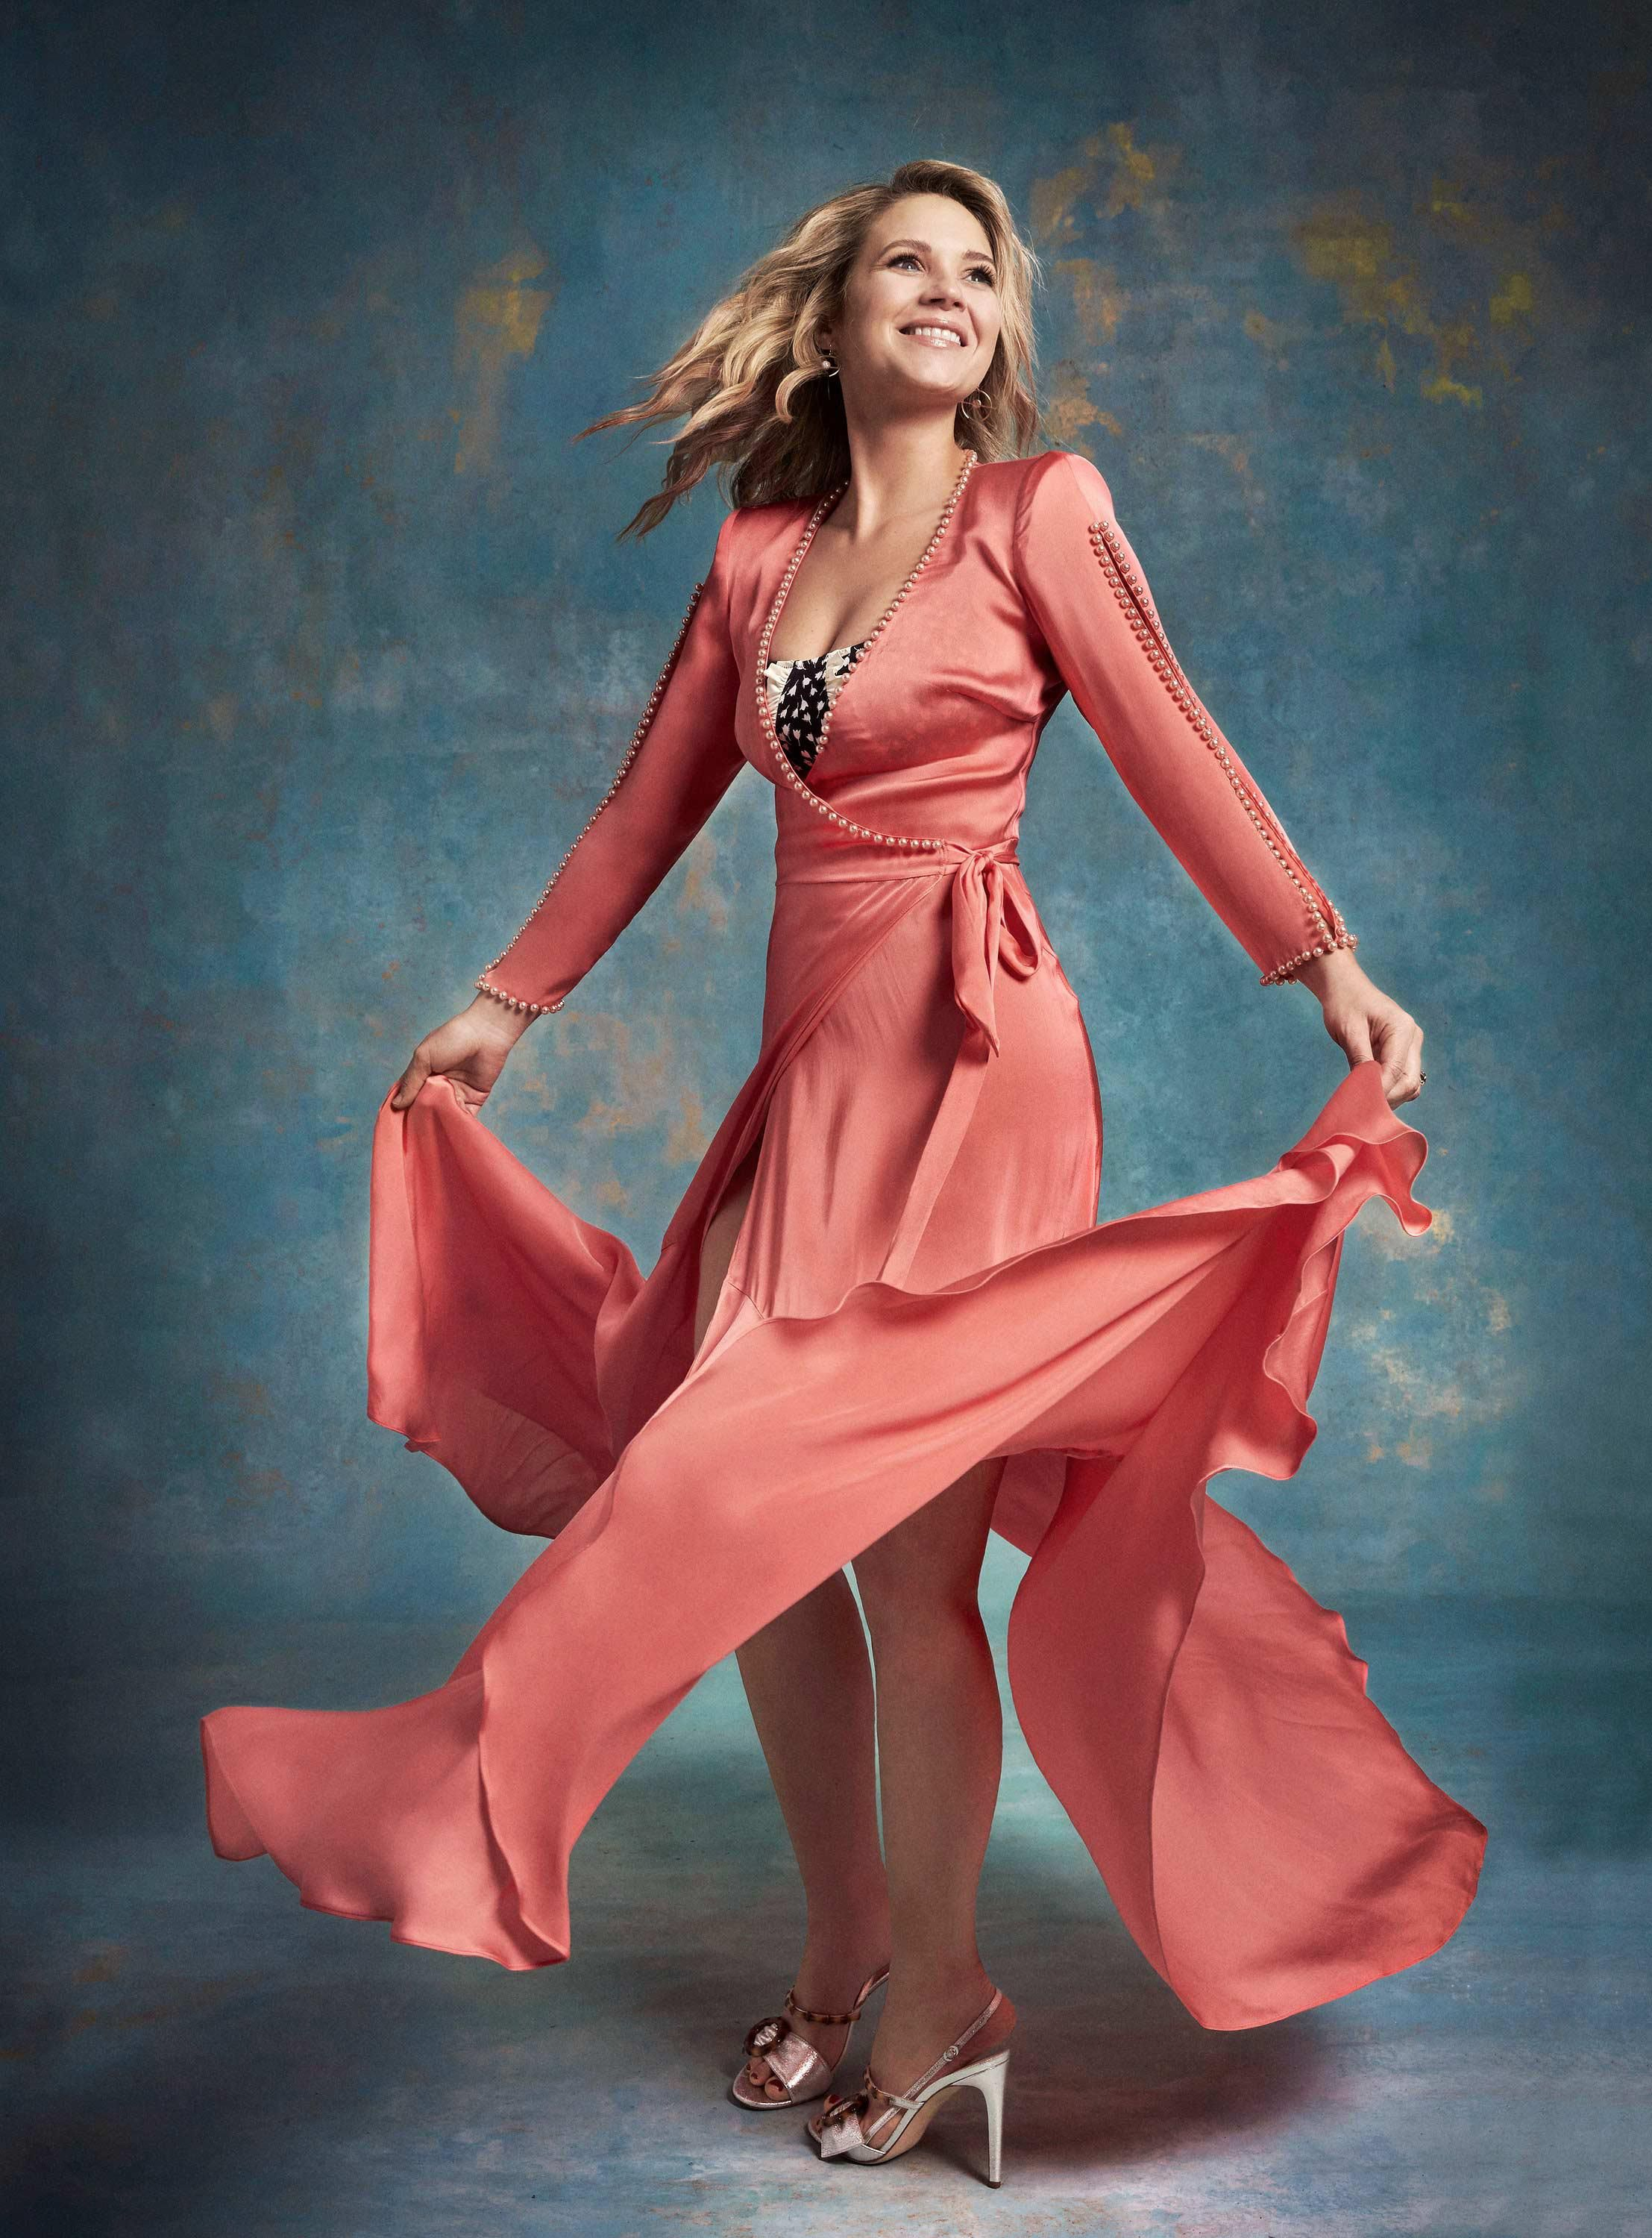 \u200bVanessa Ray models a peach wrap dress with pearls trimming the sleeves